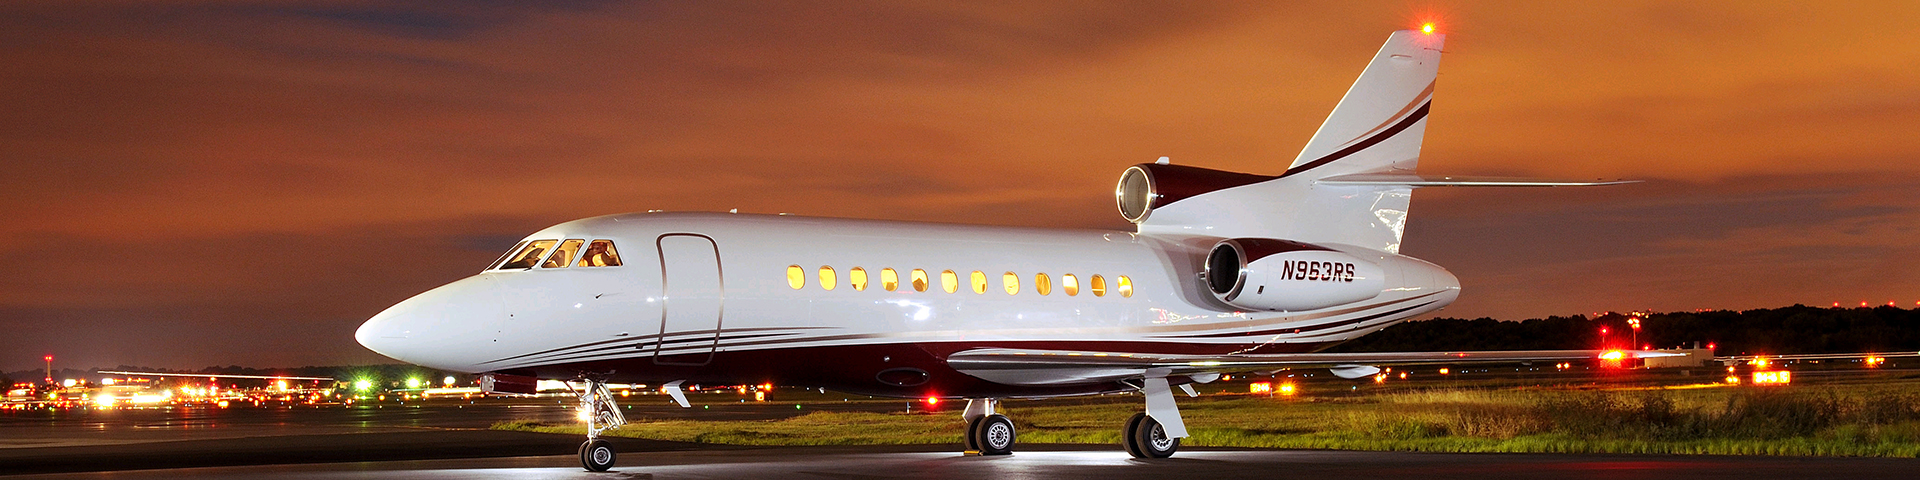 Falcon 9001 - Falcon 900 Private Jet